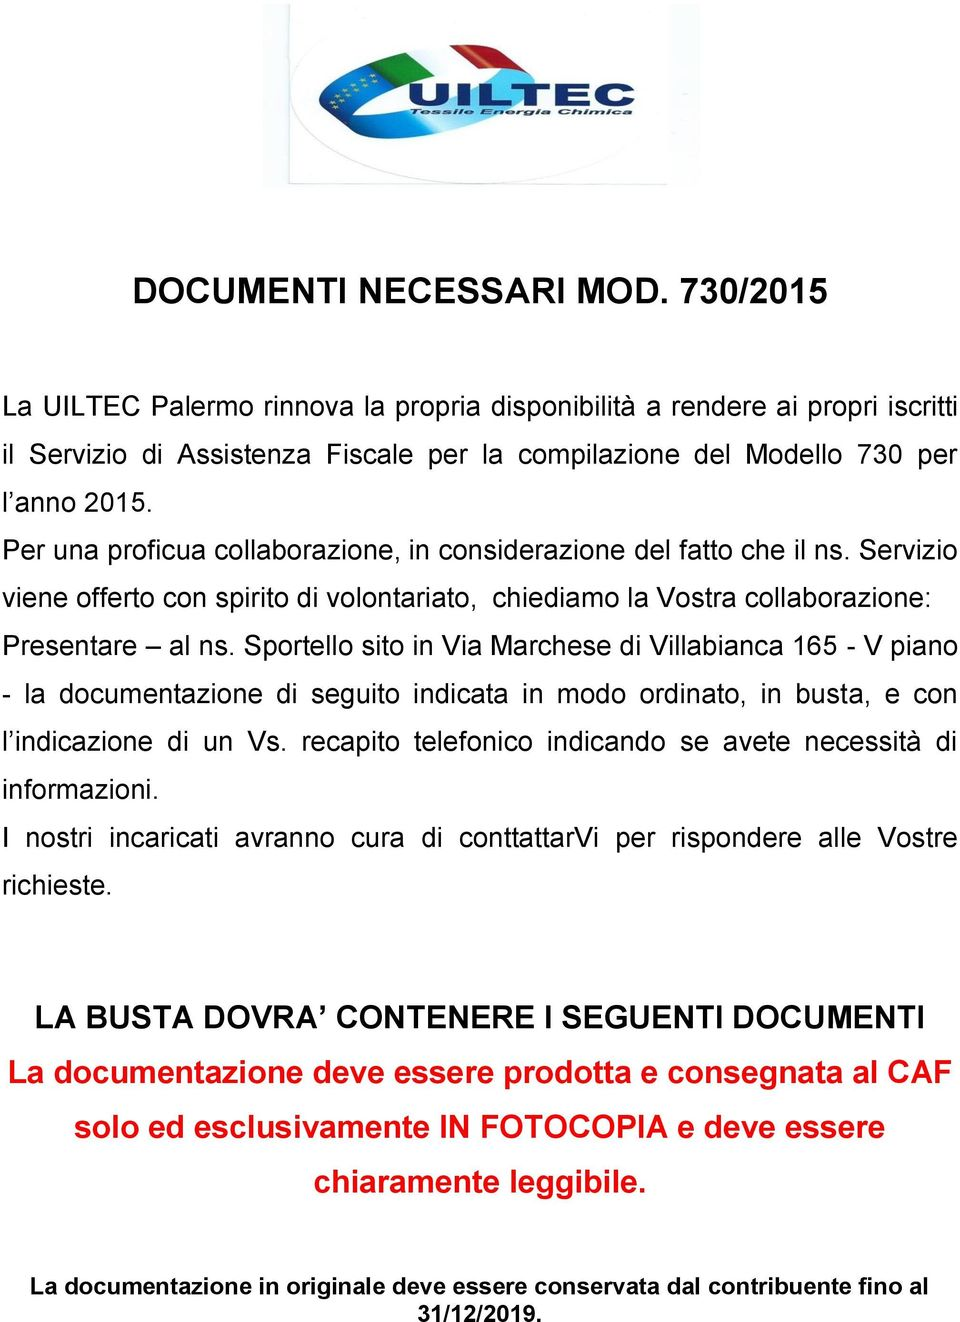 Documenti necessari mod 730 pdf for Documenti per 730